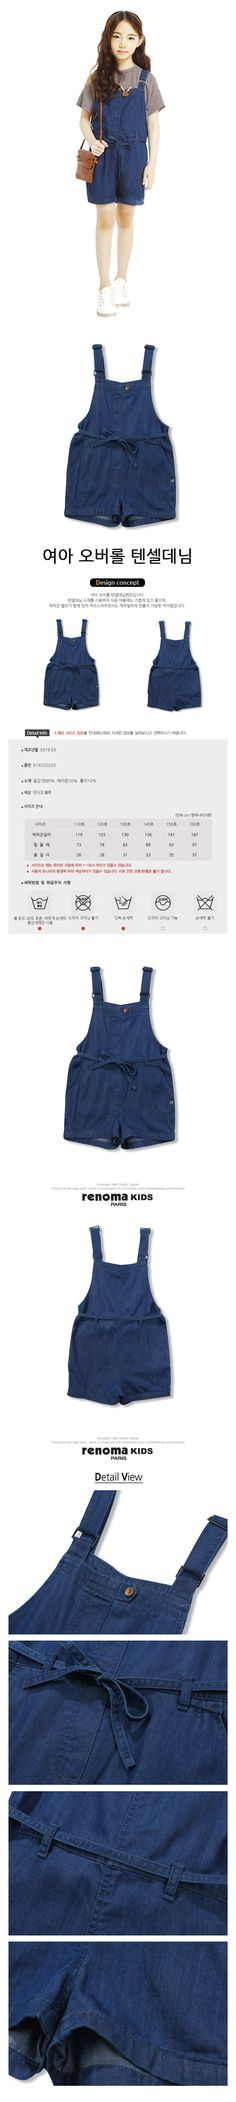 여아여아 오버롤 텐셀데님 (R1922Q233_36) - 사는 게 즐겁다! 롯데닷컴 Kids Wardrobe, Kids Fashion, Outfits Primavera, Dungarees, Spring Summer, Legs, Vestidos, Kids Outfits, Kid Closet